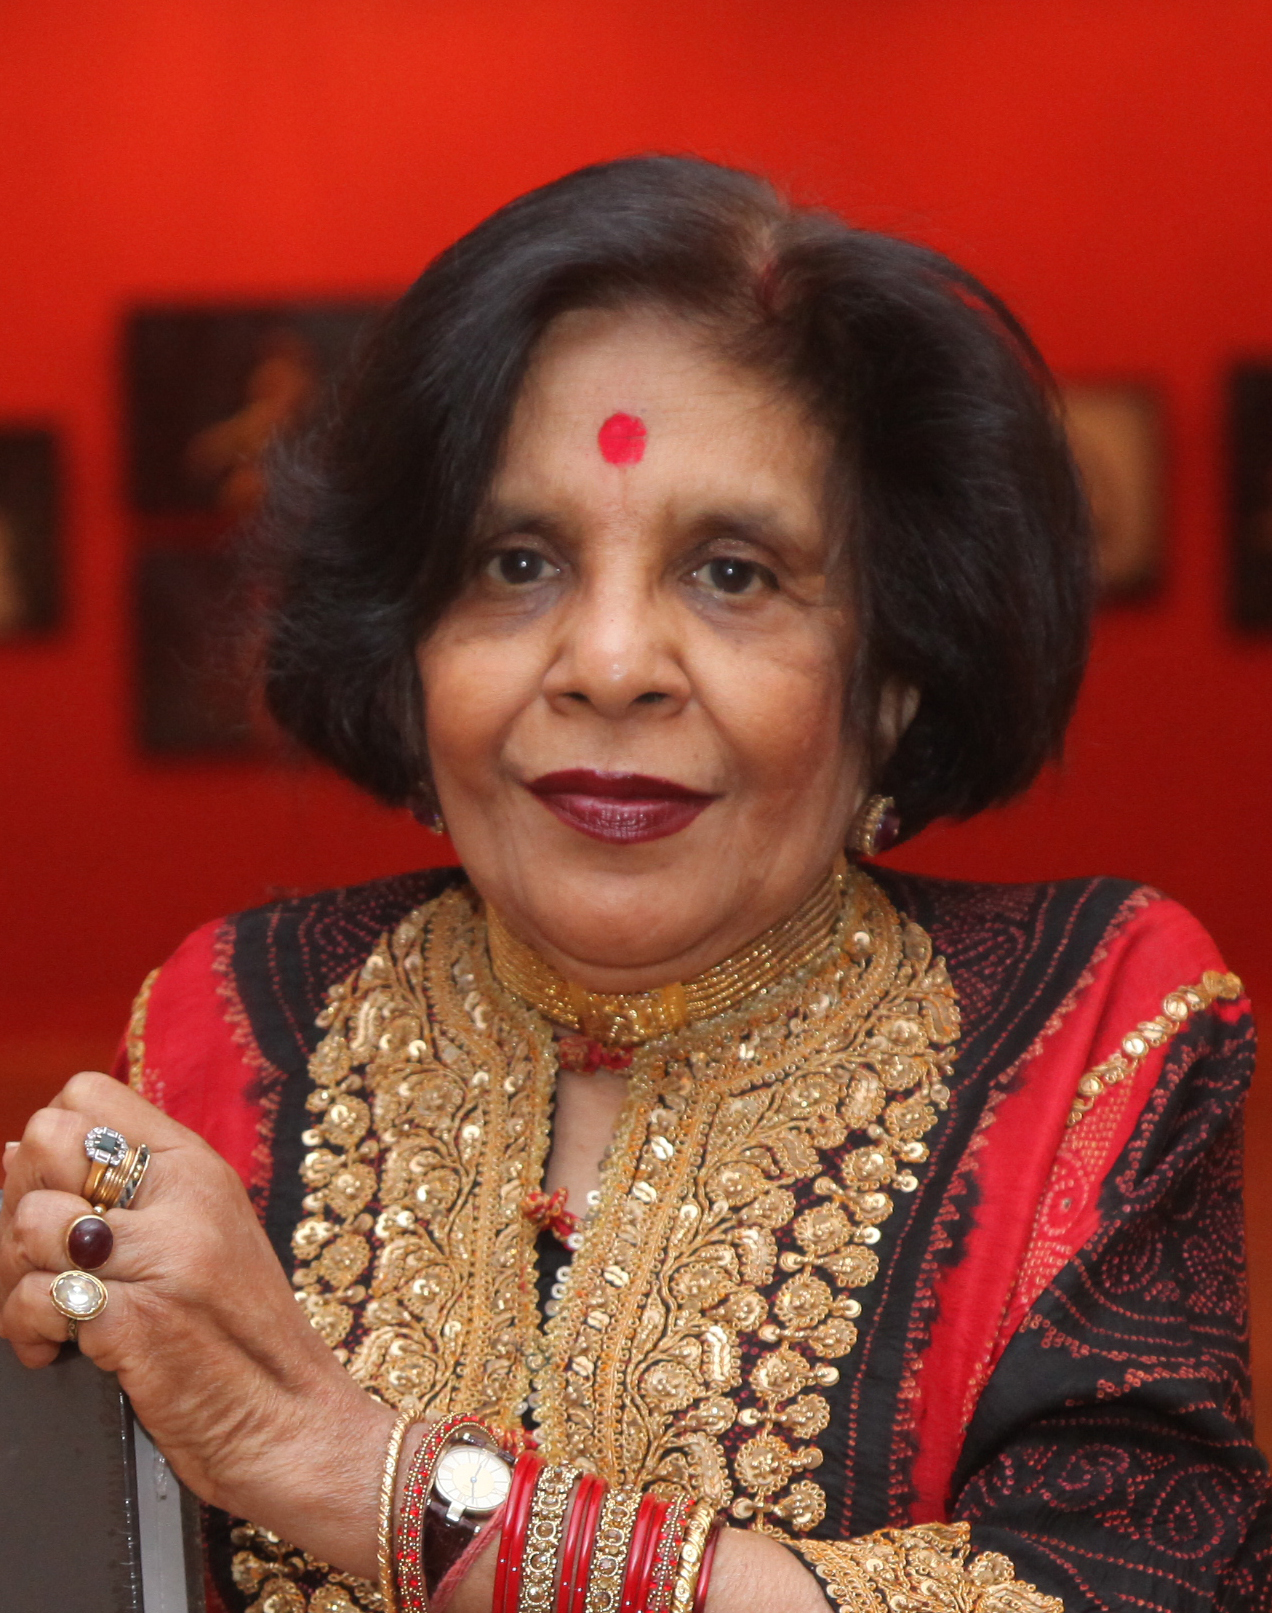 BWW Interview: SHOBHA DEEPAK SINGH On The Grandest Ramlila In India